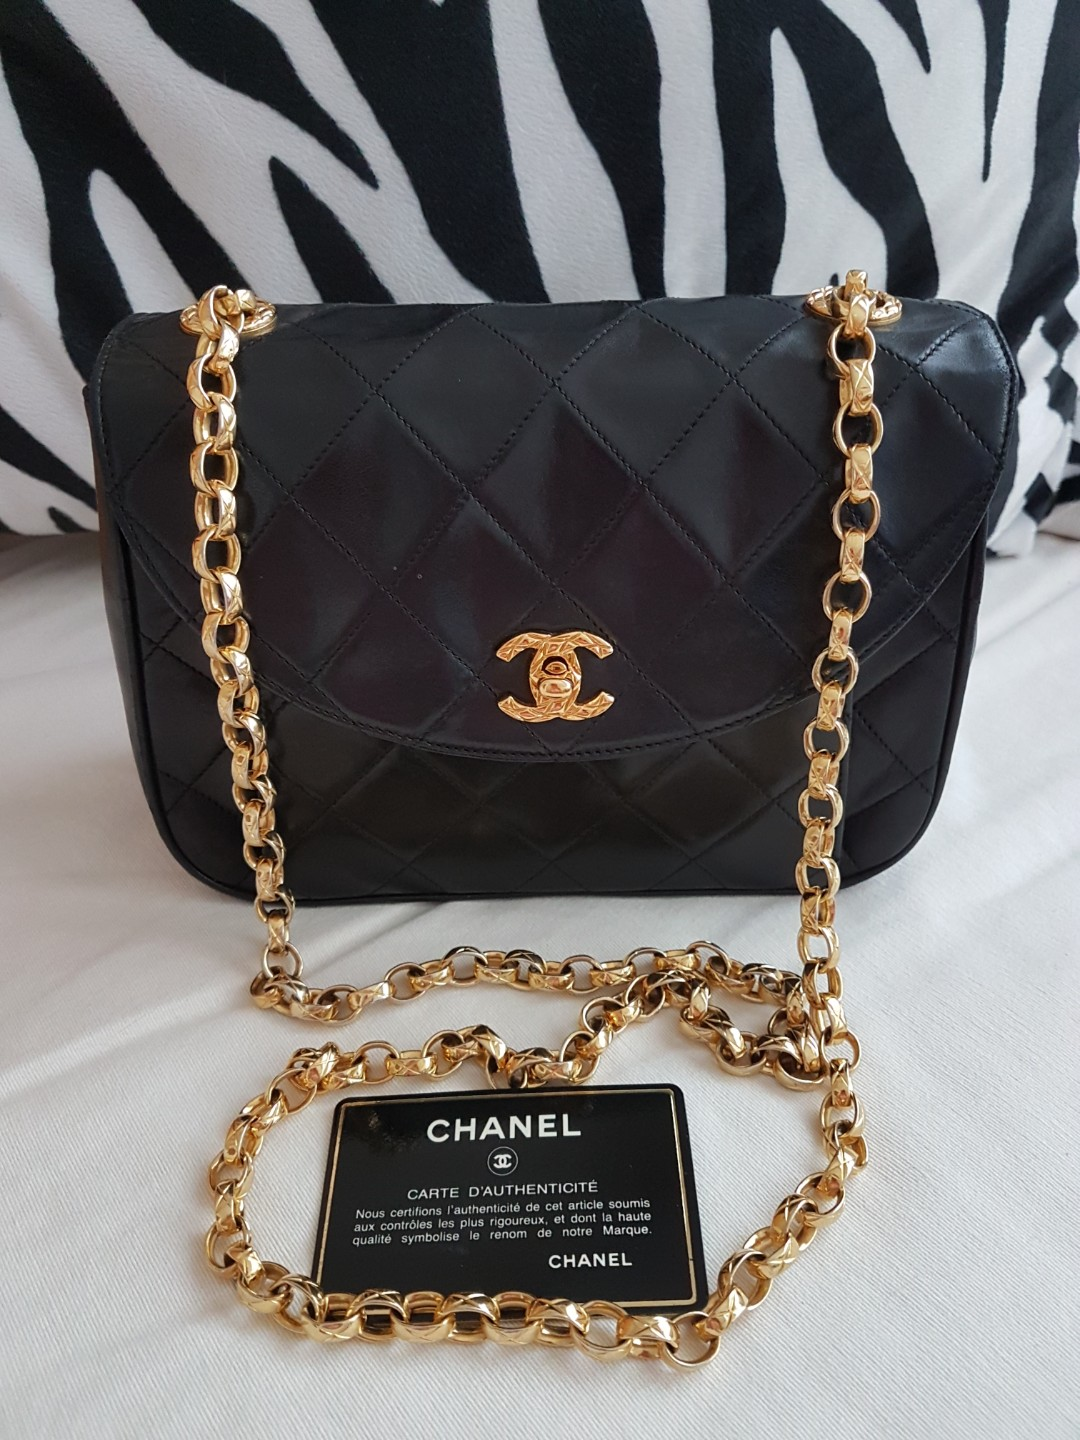 6bbe1bcc3d55 Pending) Chanel Vintage Flap with Bijoux 24K Gold Plated Chain ...